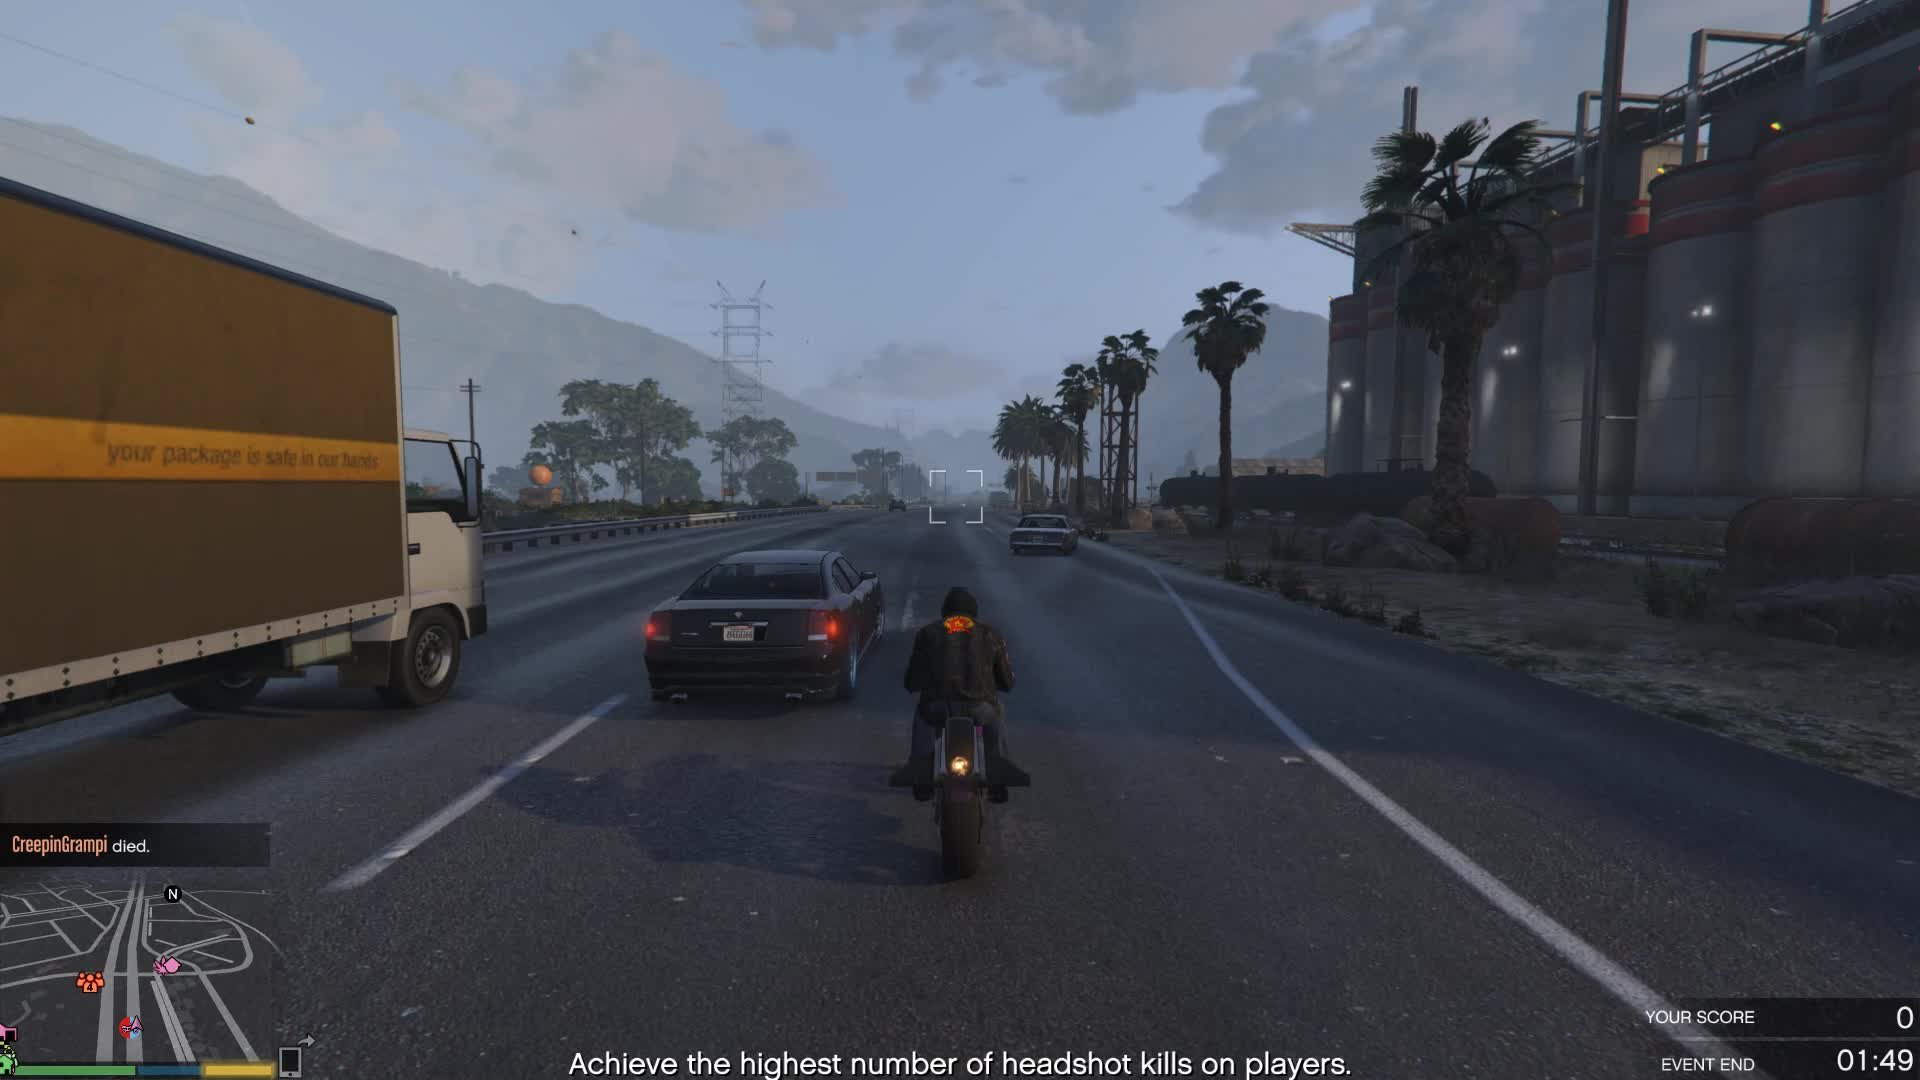 grandtheftautov, vlc-record-2018-11-05-15h13m22s-Grand Theft Auto V 2018.11.03 - 21.08.32.03.DVR.mp4- GIFs